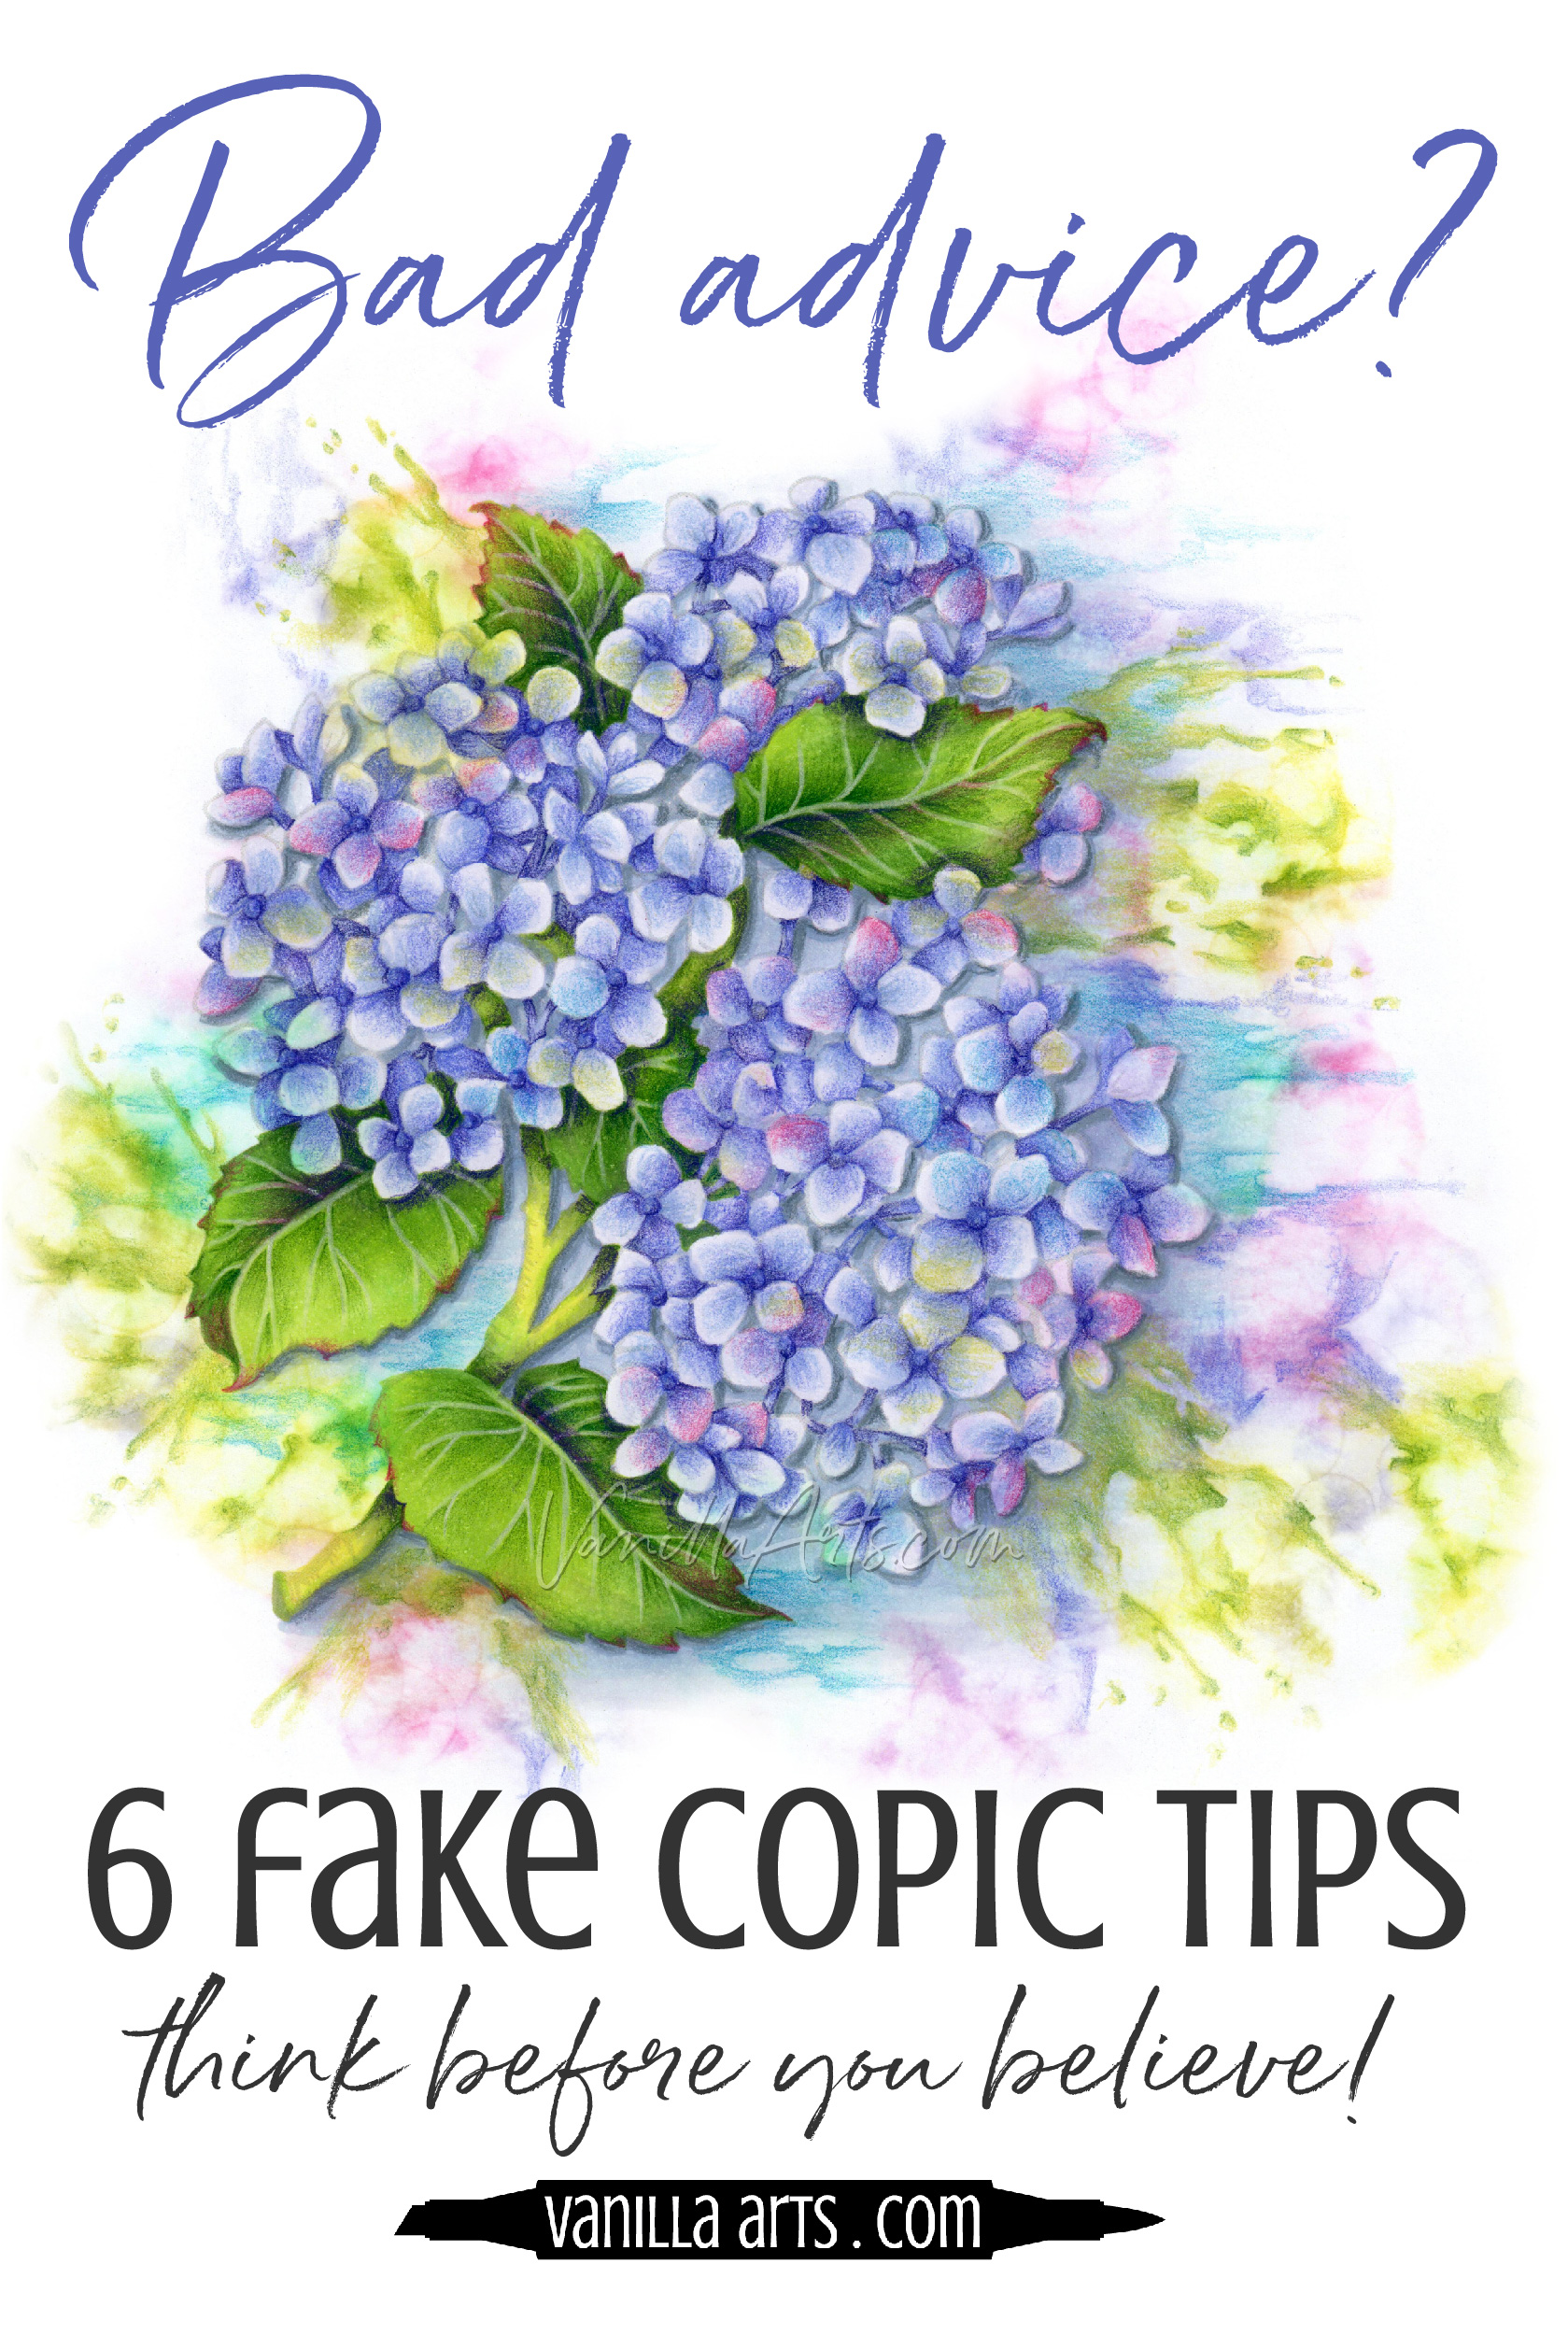 Six myths you believe about Copic Markers and they're all wrong! Take the cap off? Squeaky markers? Fake tips make coloring harder than it has to be!. | VanillaArts.com | #copicmarker #realisticcoloring #howtocolor